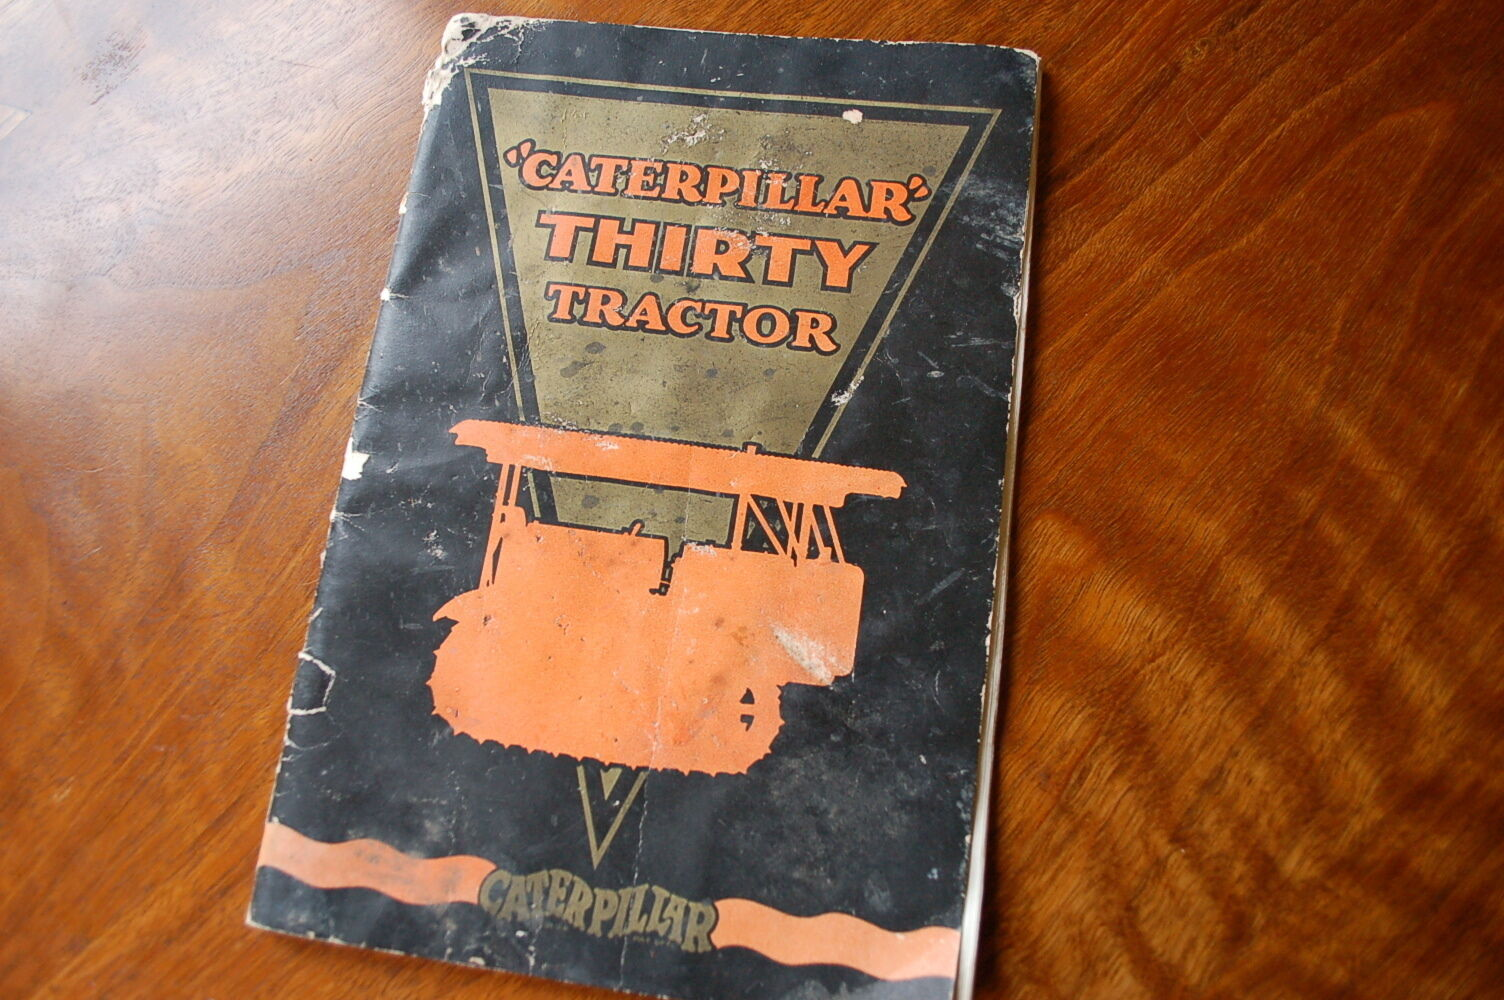 HOLT Caterpillar THIRTY Crawler Sales Brochure Manual 30 dozer tractor  vintage 1 of 8Only 1 available HOLT Caterpillar ...